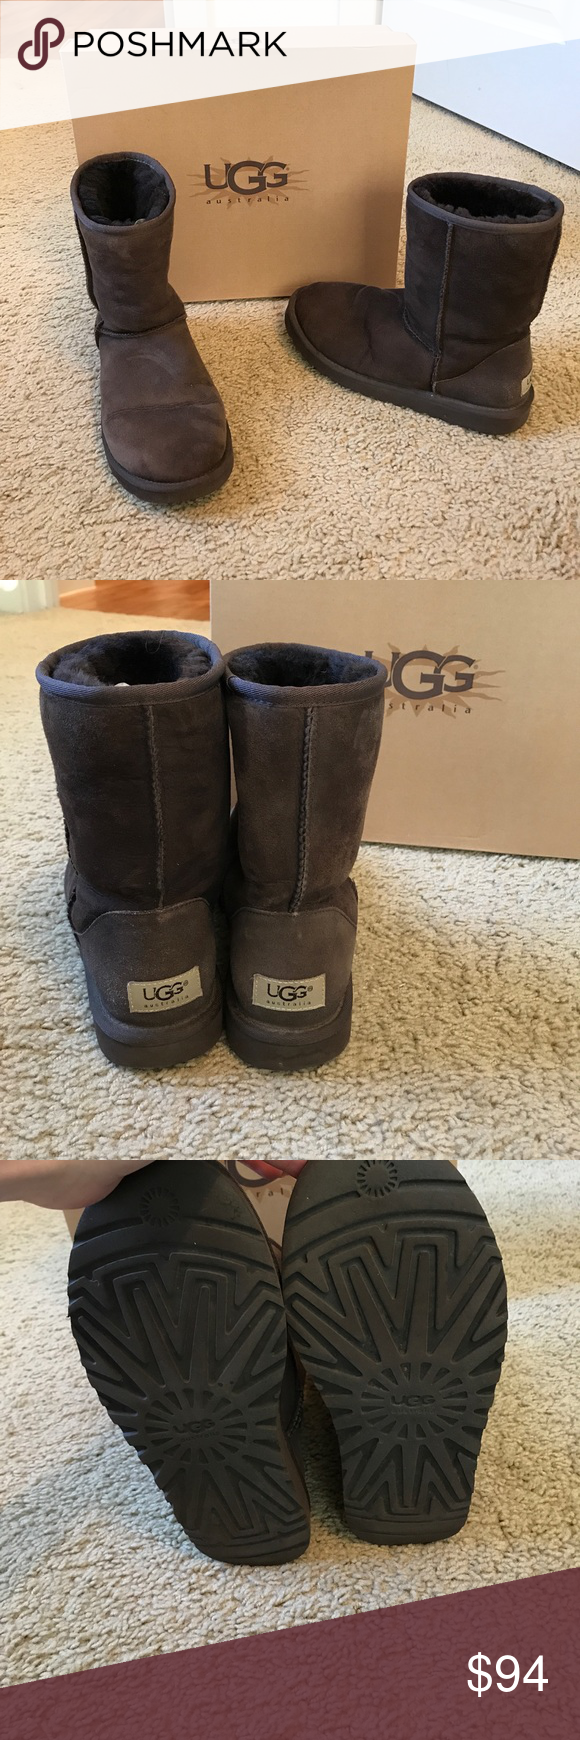 Taille W7 Brown Brown W7 Ugg Bottes Comfy Bottes! 9a89ecc - freemetalalbums.info